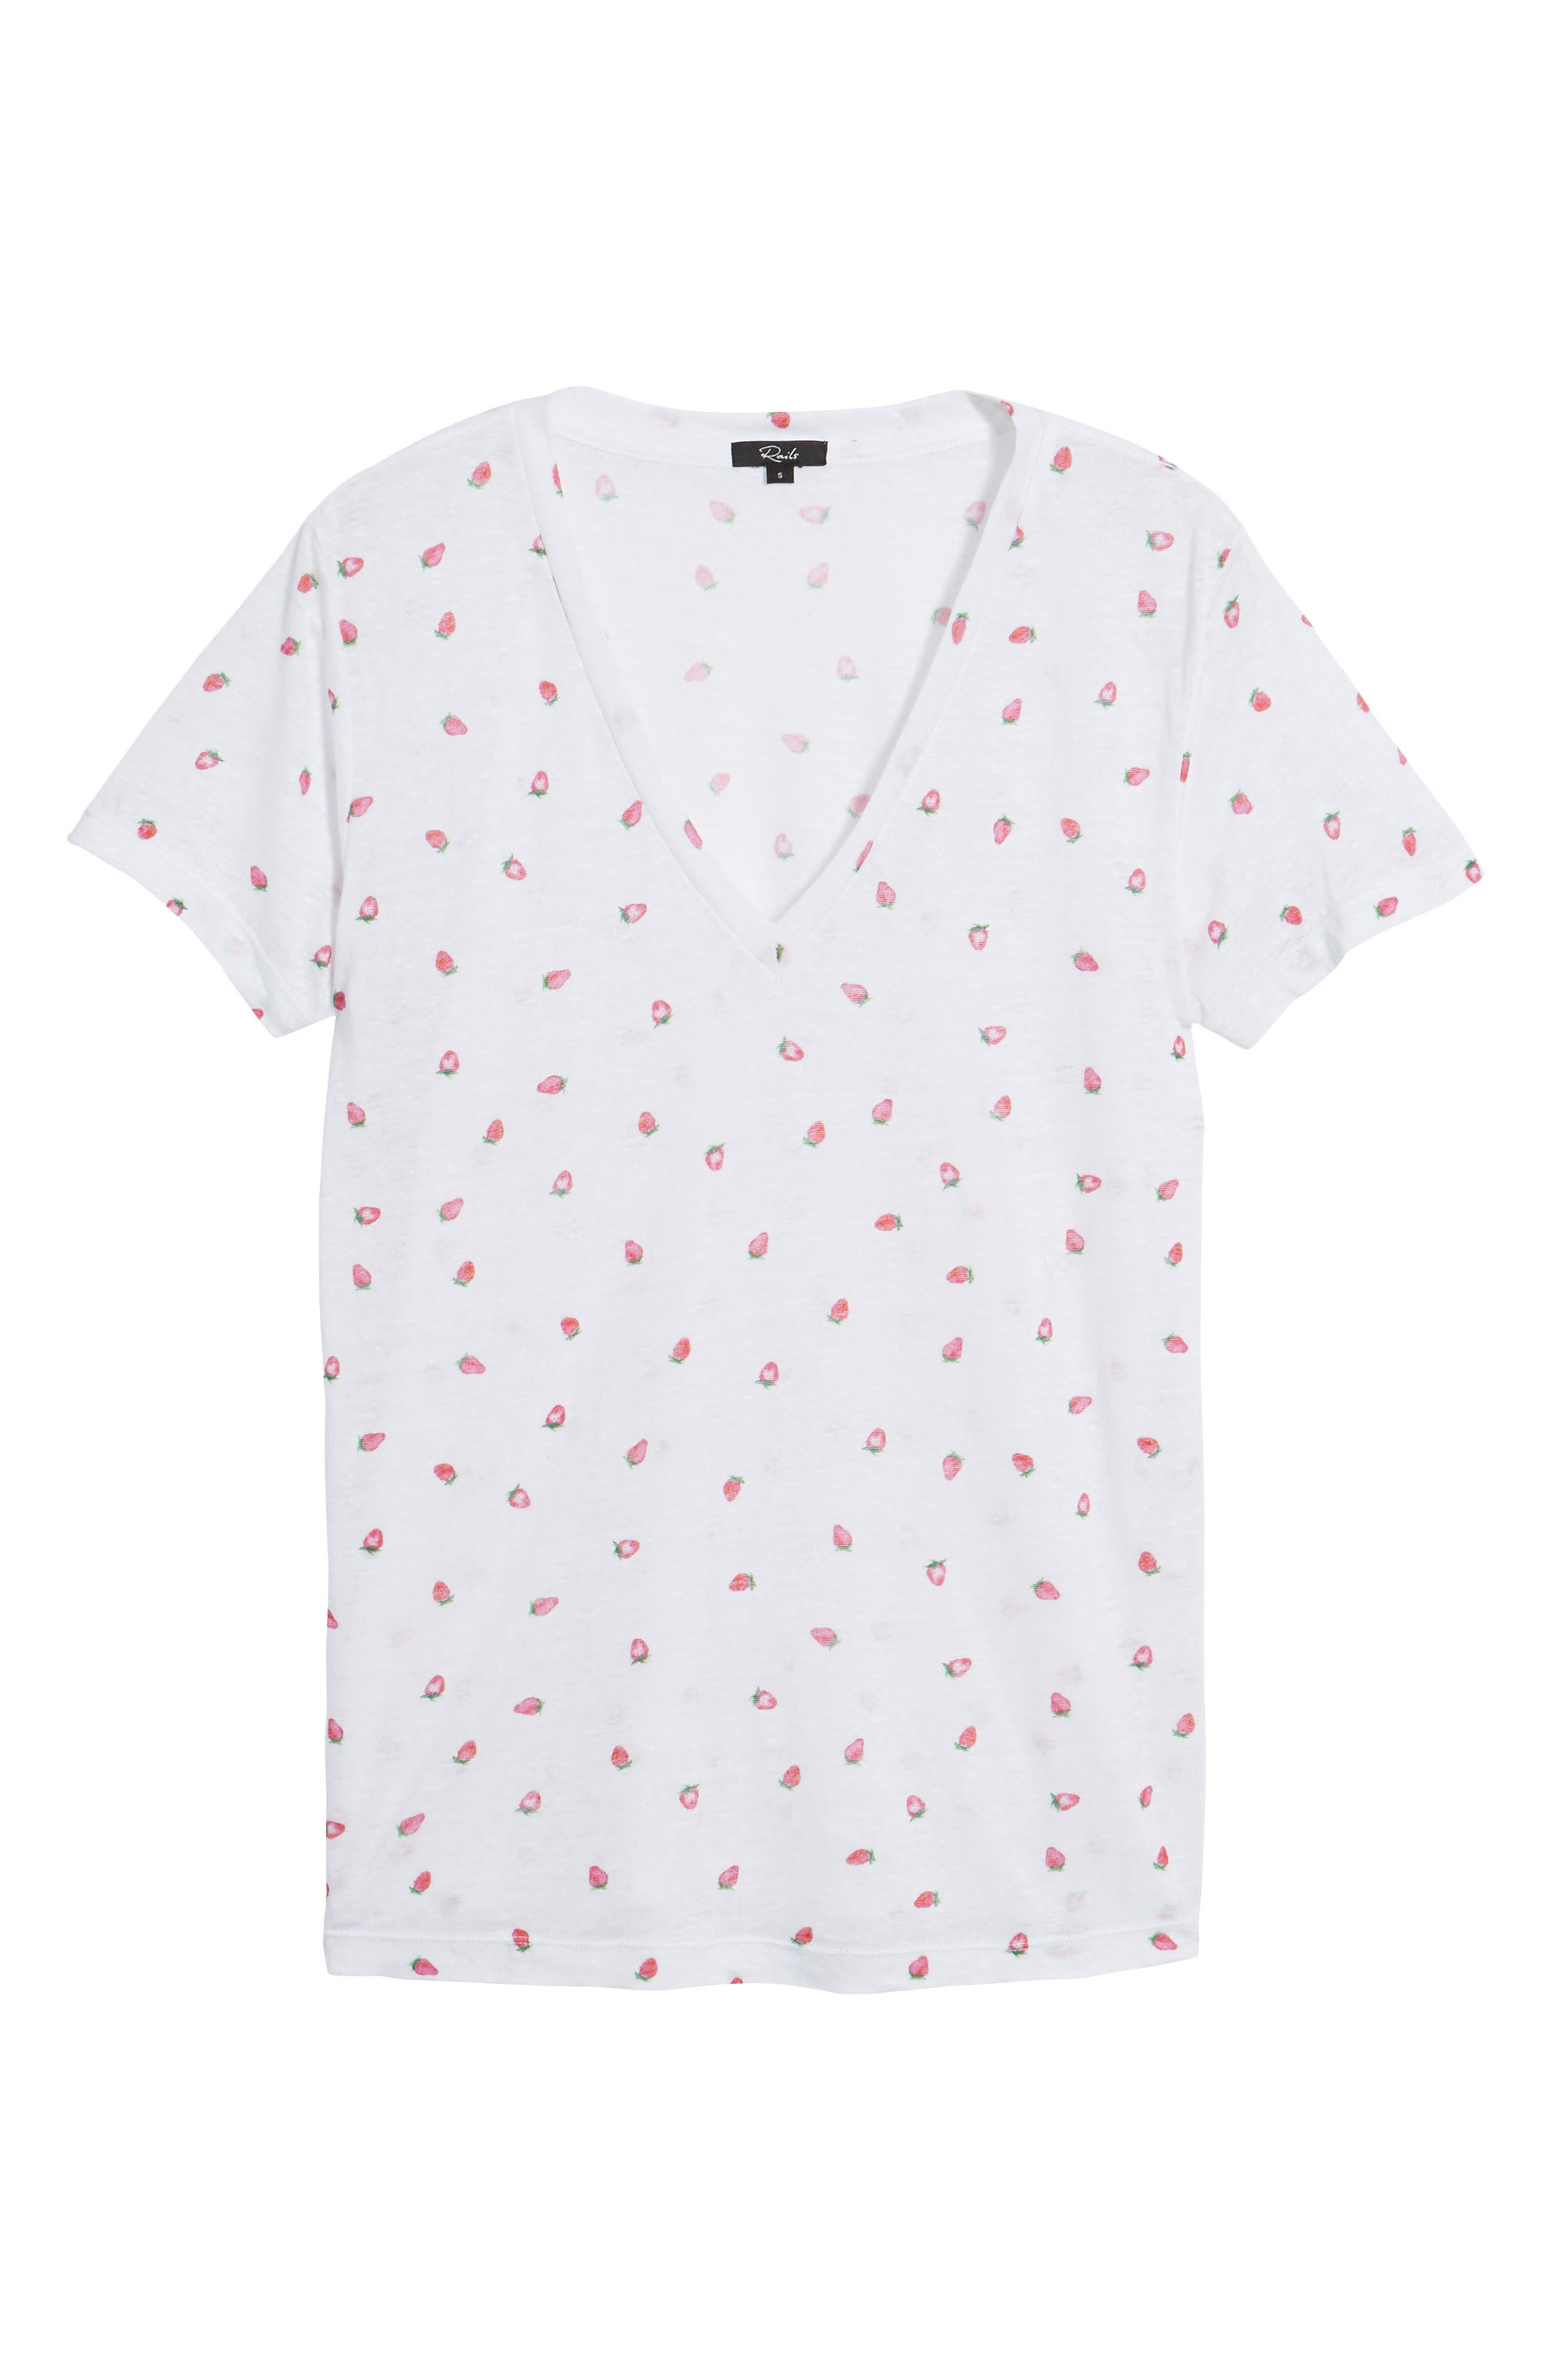 Cara Strawberry Tee,                             Alternate thumbnail 6, color,                             Strawberries